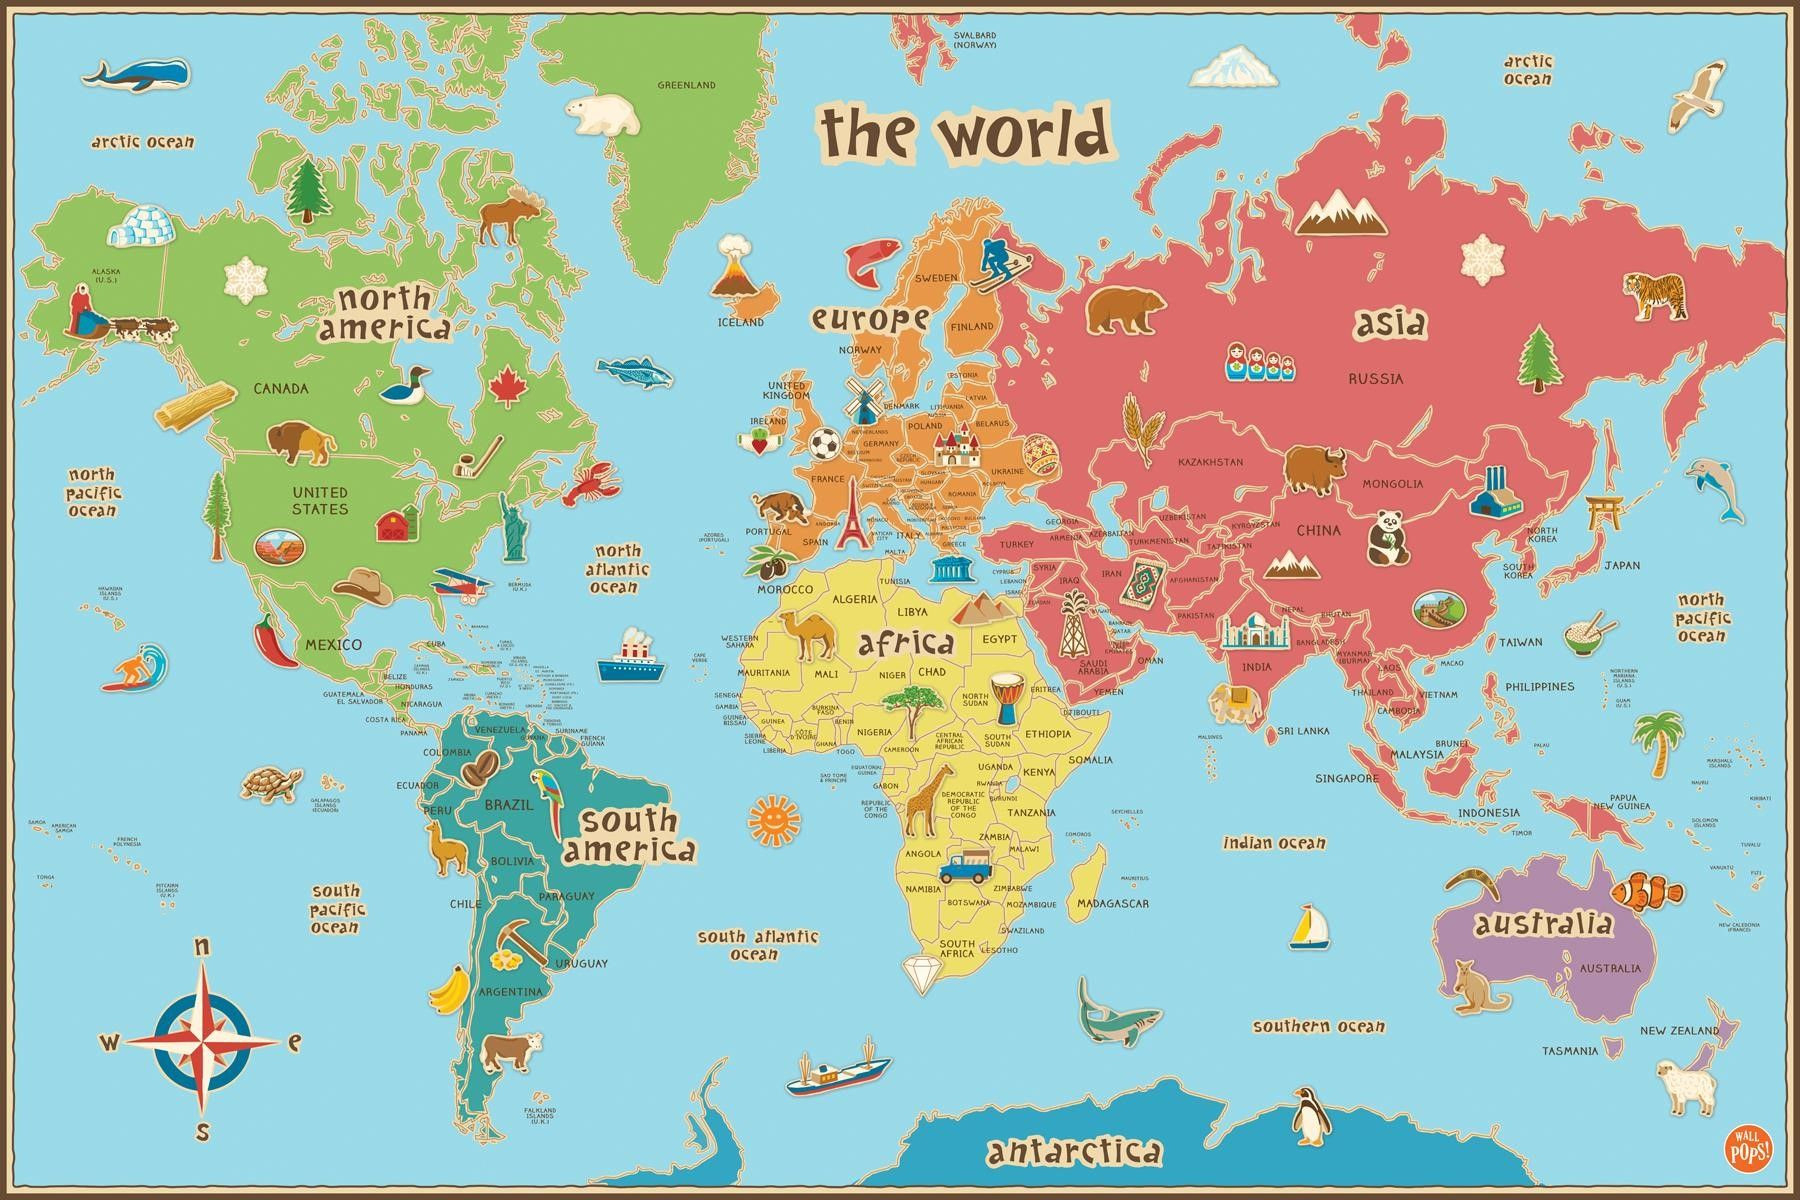 Printable Labeled World Maps - Lgq - Free Printable World Map With Countries Labeled